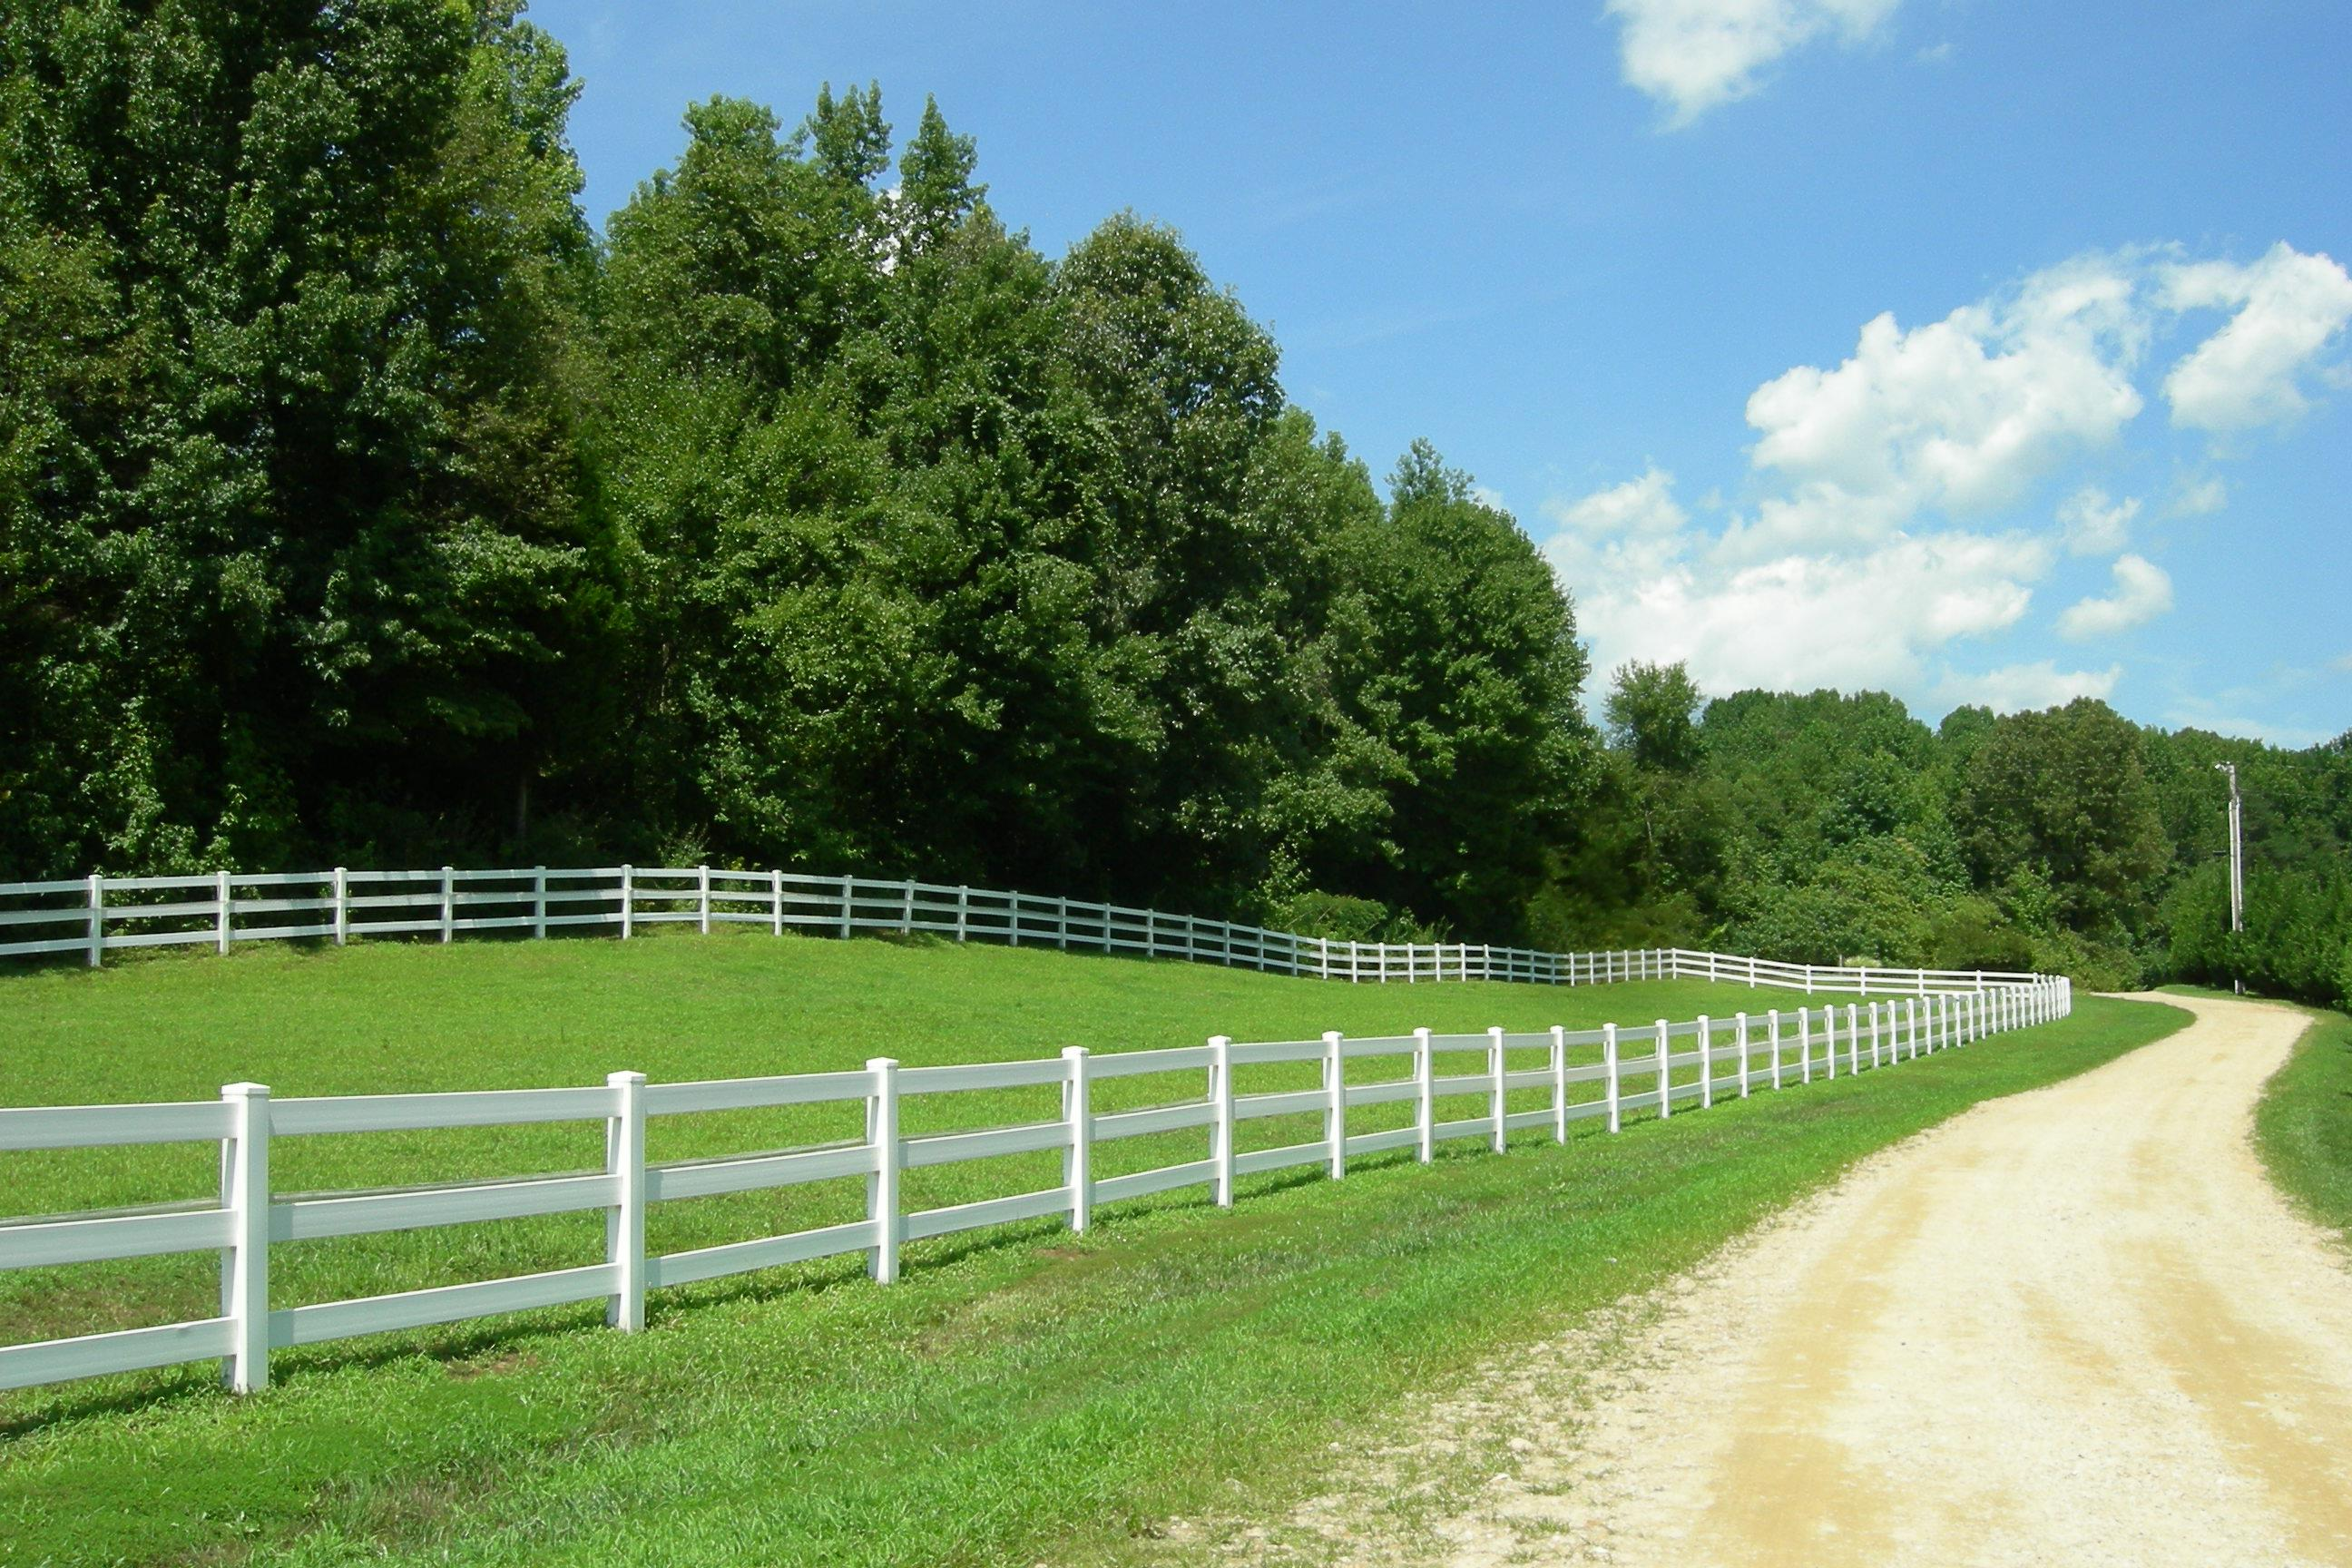 Fenced Pastures for Horses and Livestock in Southern Maryland Farm Property Residences